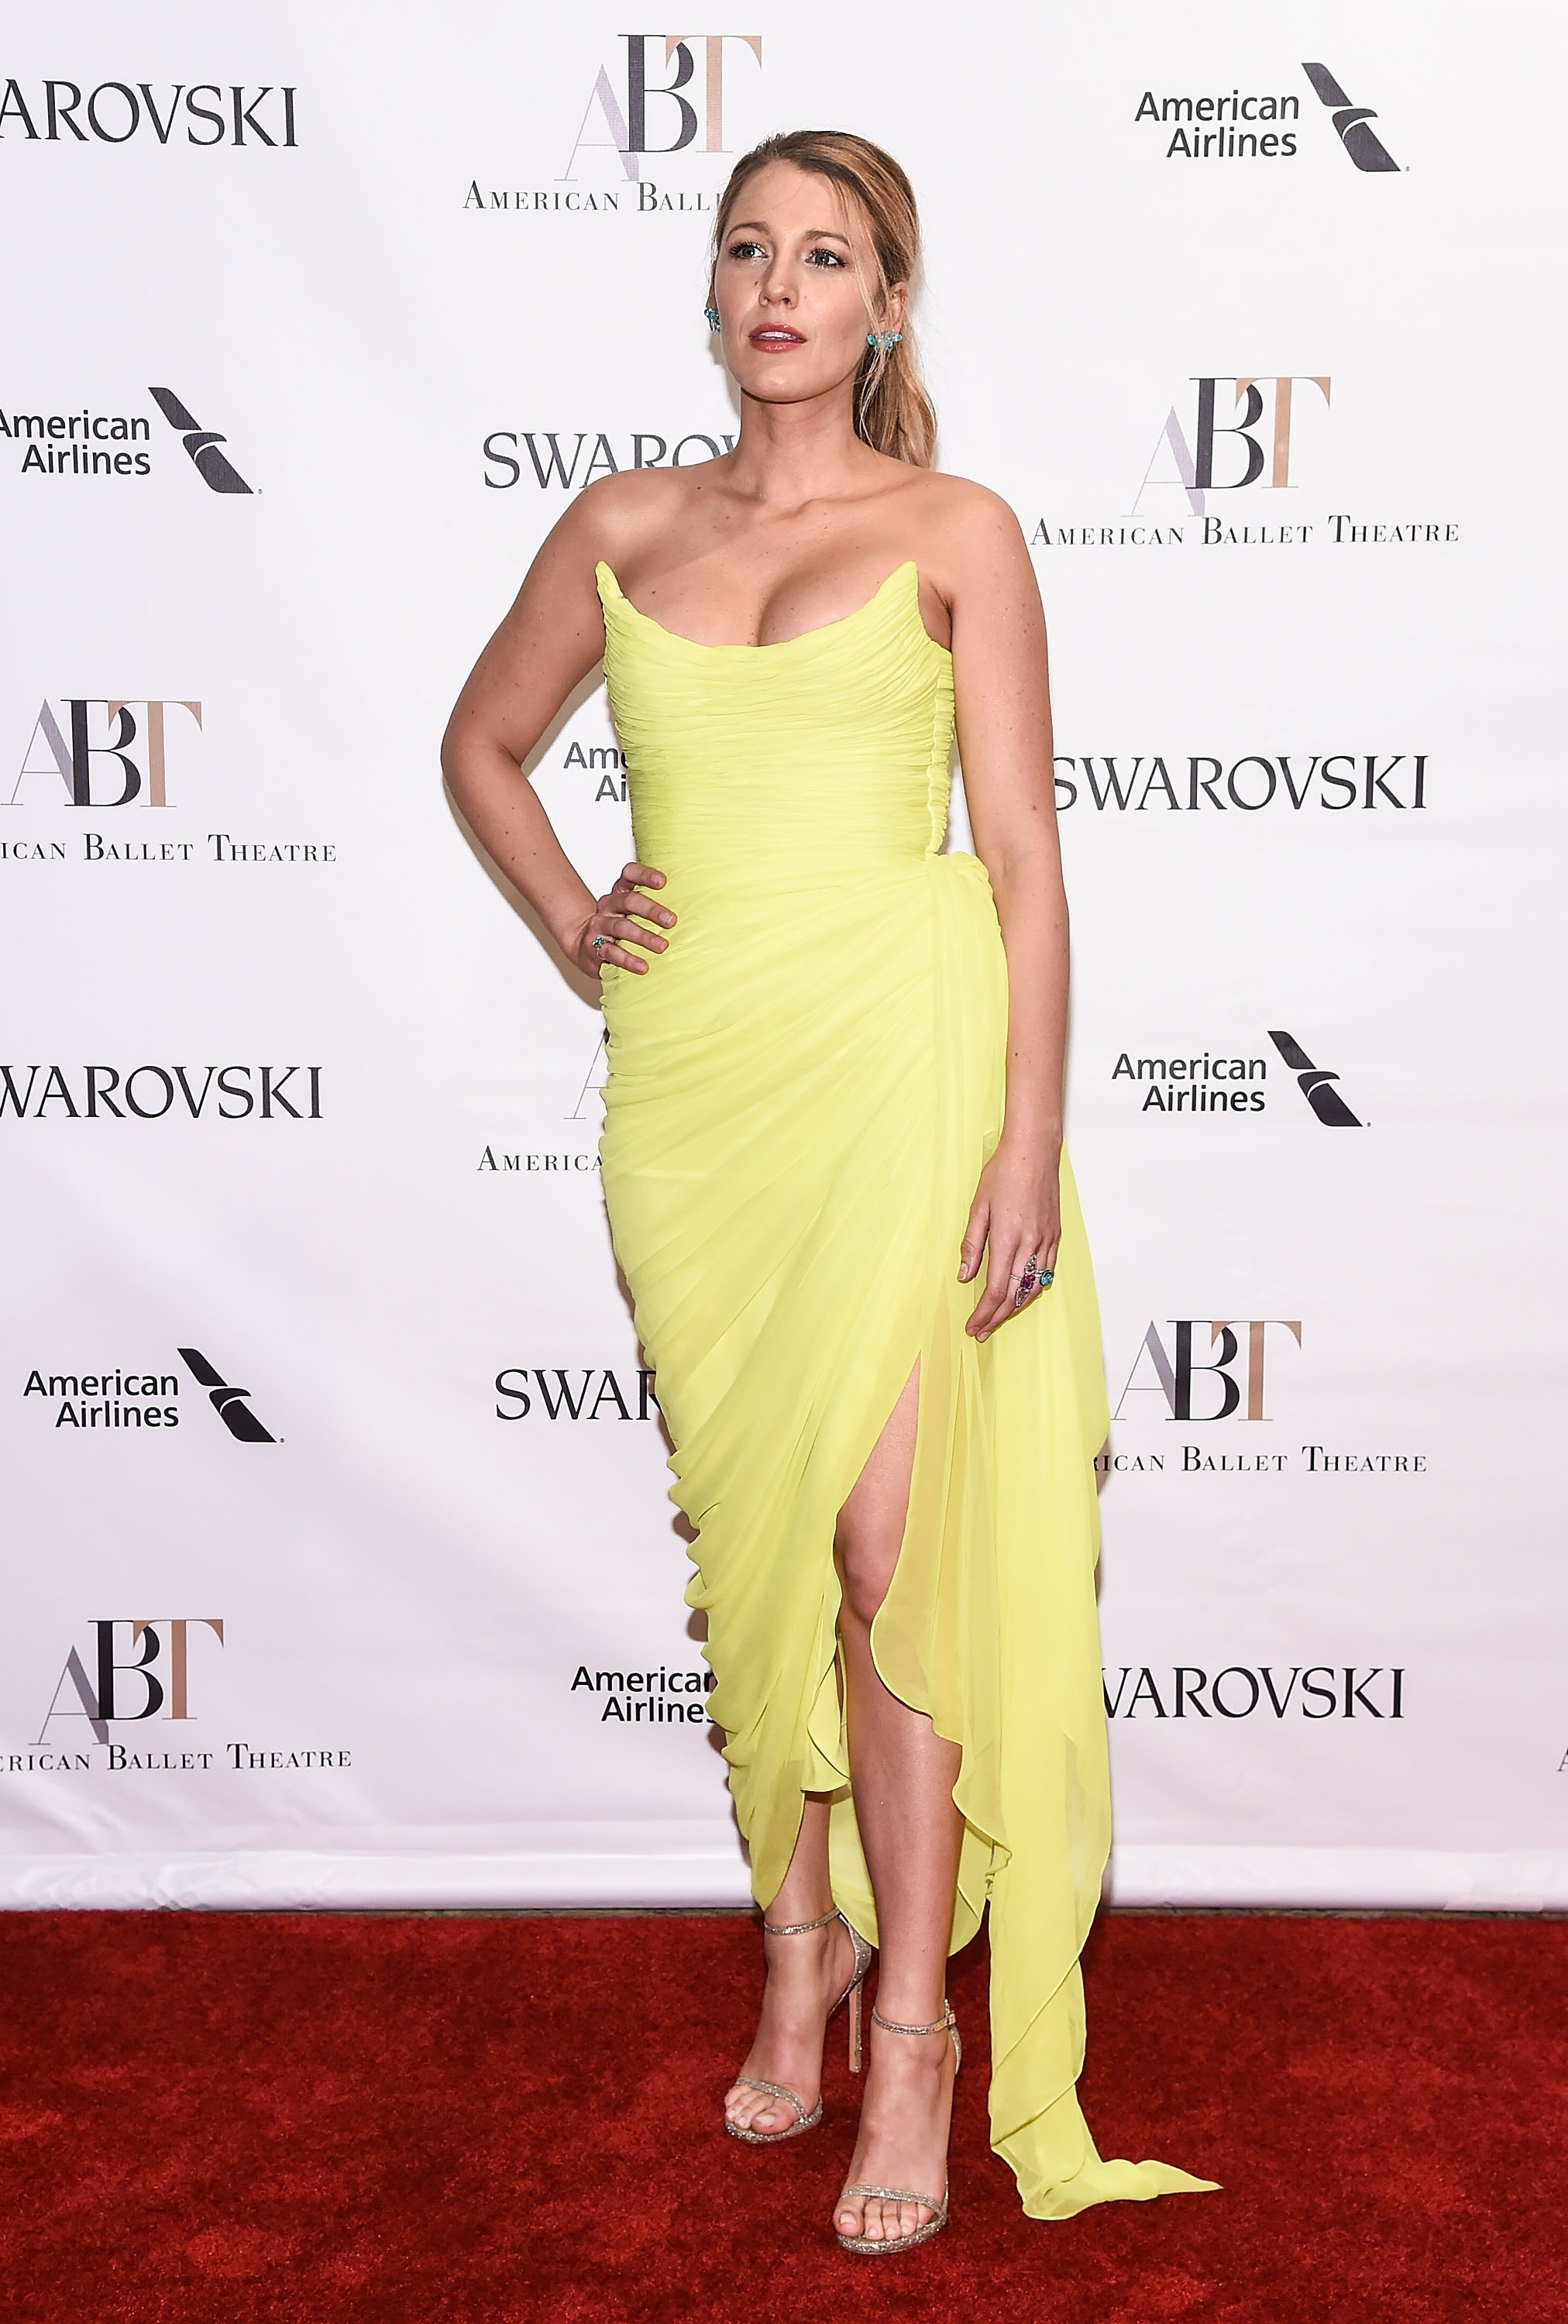 Blake wore this neon yellow corseted dress by Oscar de la Renta to the American Ballet Theatre Spring 2017 Gala.